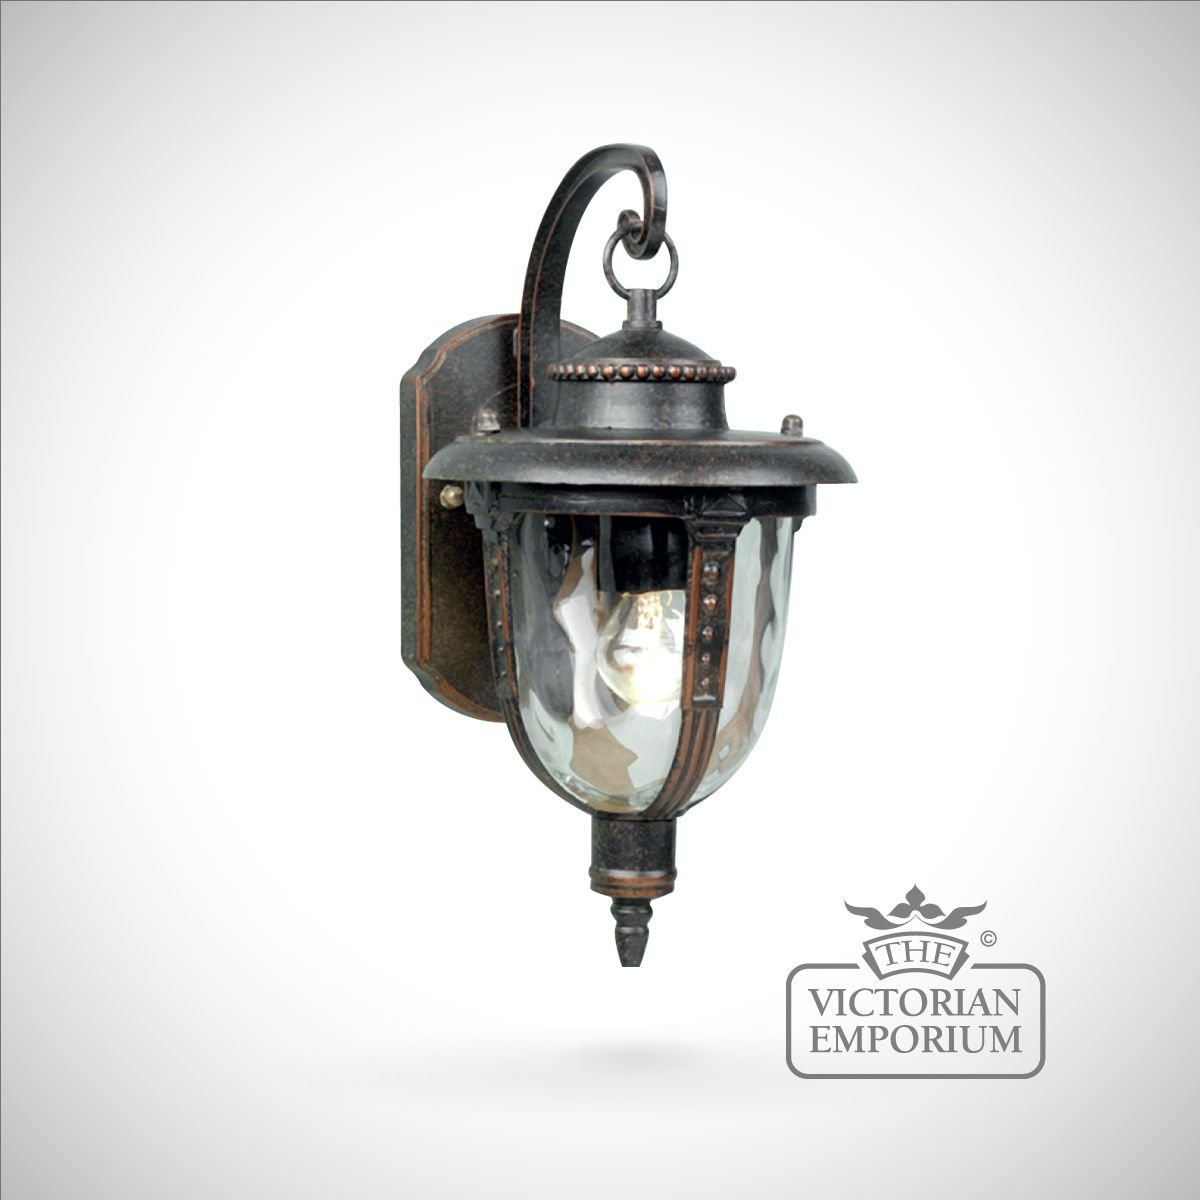 Decorative Outside Wall Lights : Decorative wall lantern - small - Outdoor Wall Lights